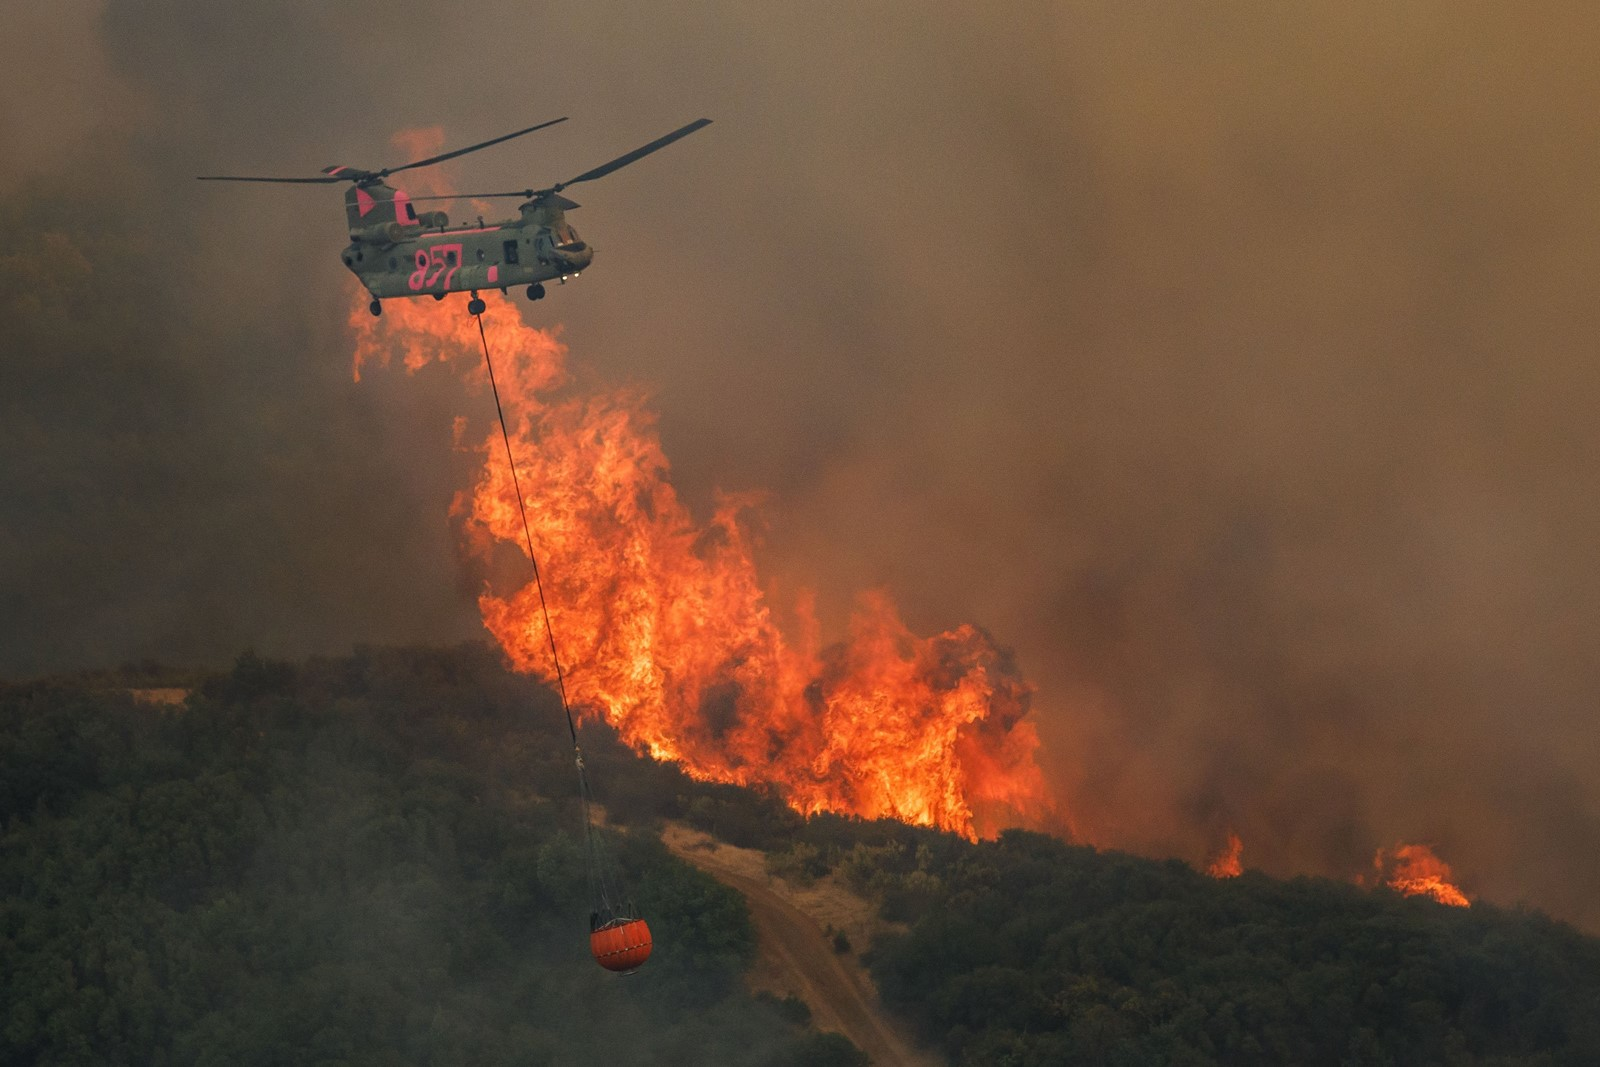 A helicopter drops water on the River fire, one of two blazes in Mendocino County, California. Together the two fires have burned more than 80,000 acres since Friday and neither is more than 12% contained. — Photograph: Marcus Yam/Los Angeles Times.